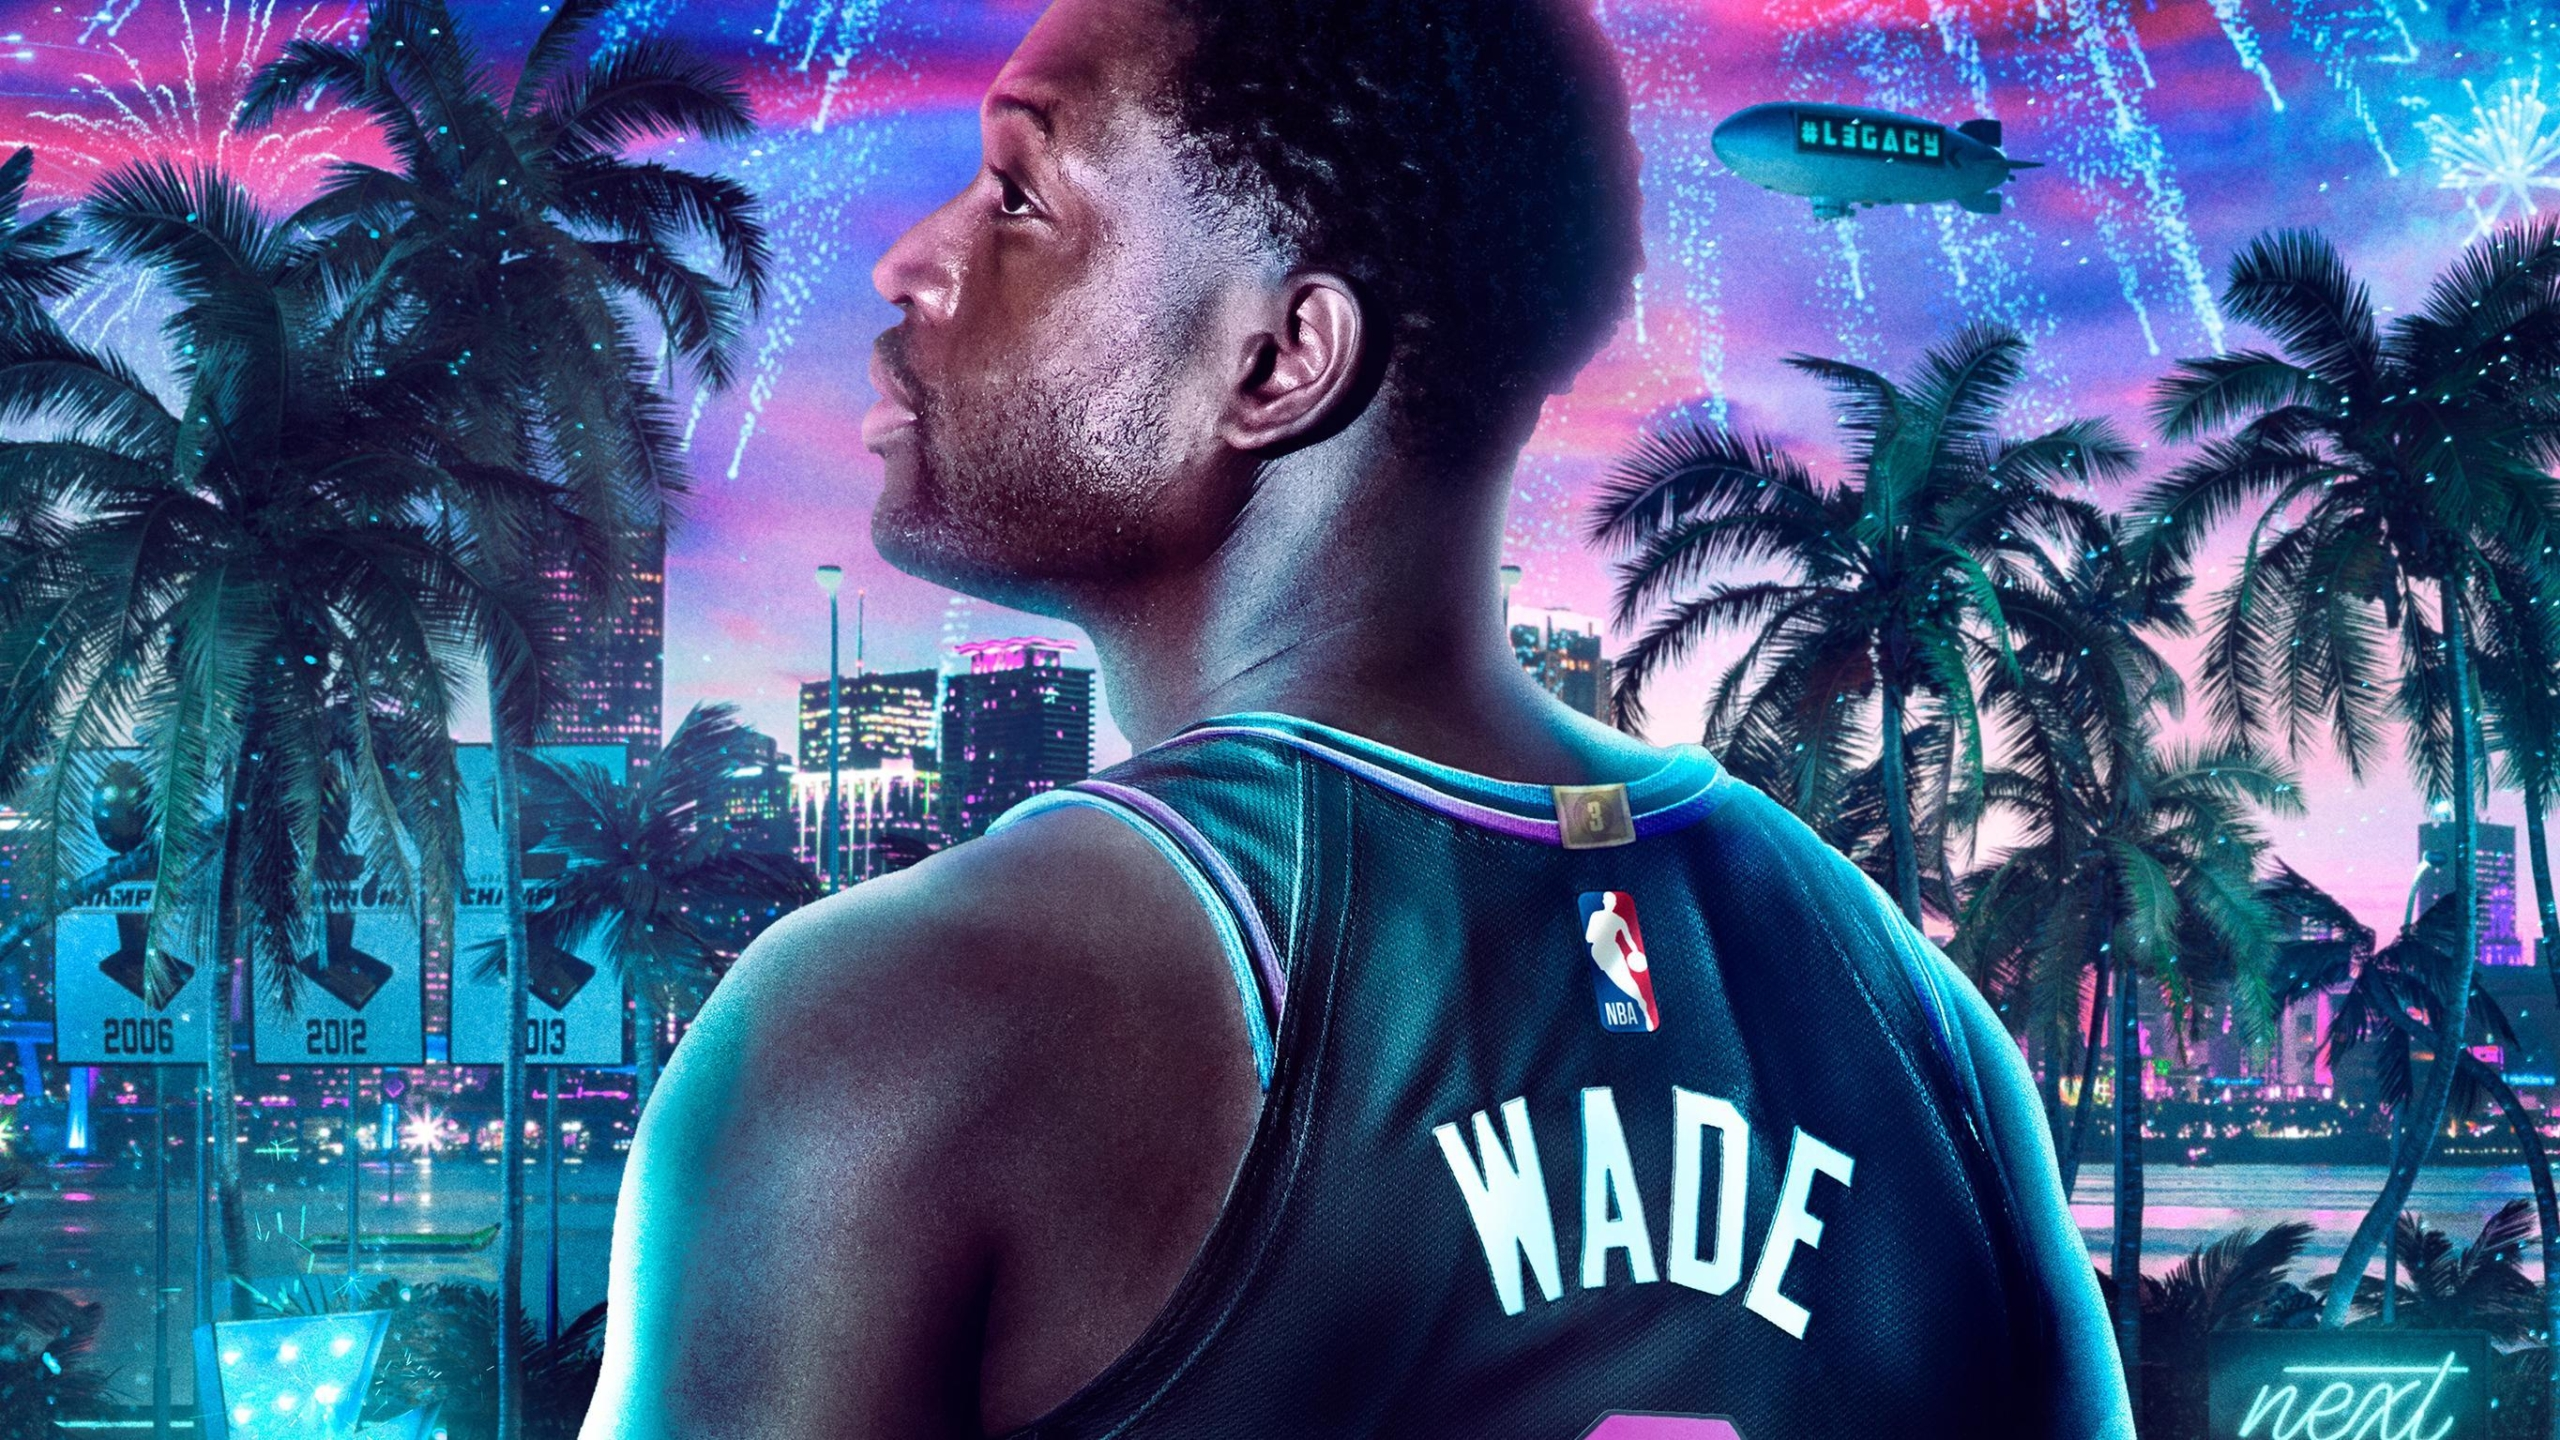 Searching For the Best 2k20 Wallpaper